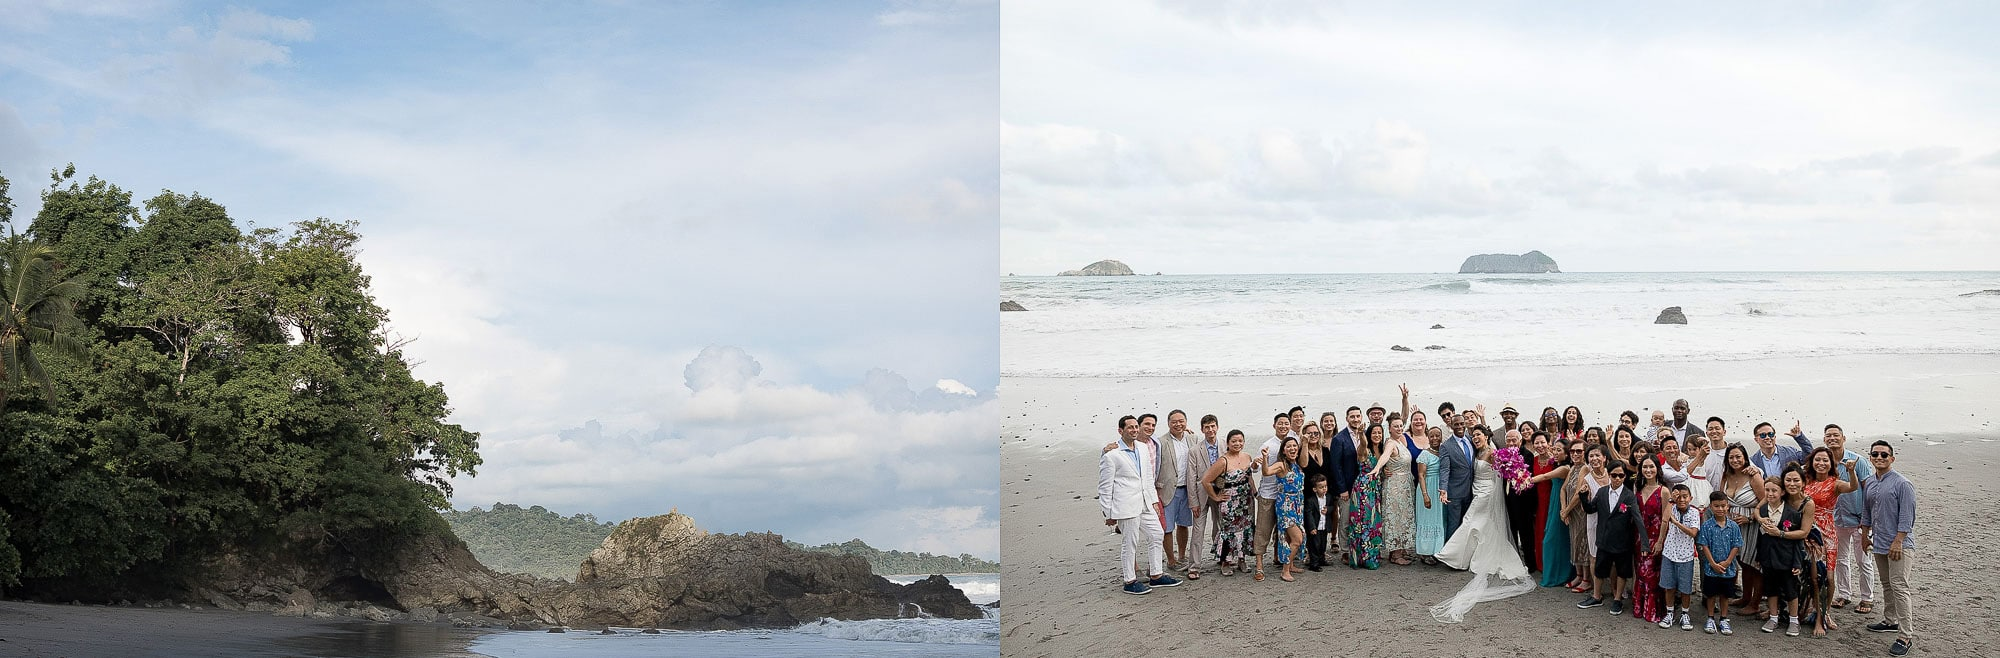 A shot of the whole wedding group in their epic location at Arenas del Mar